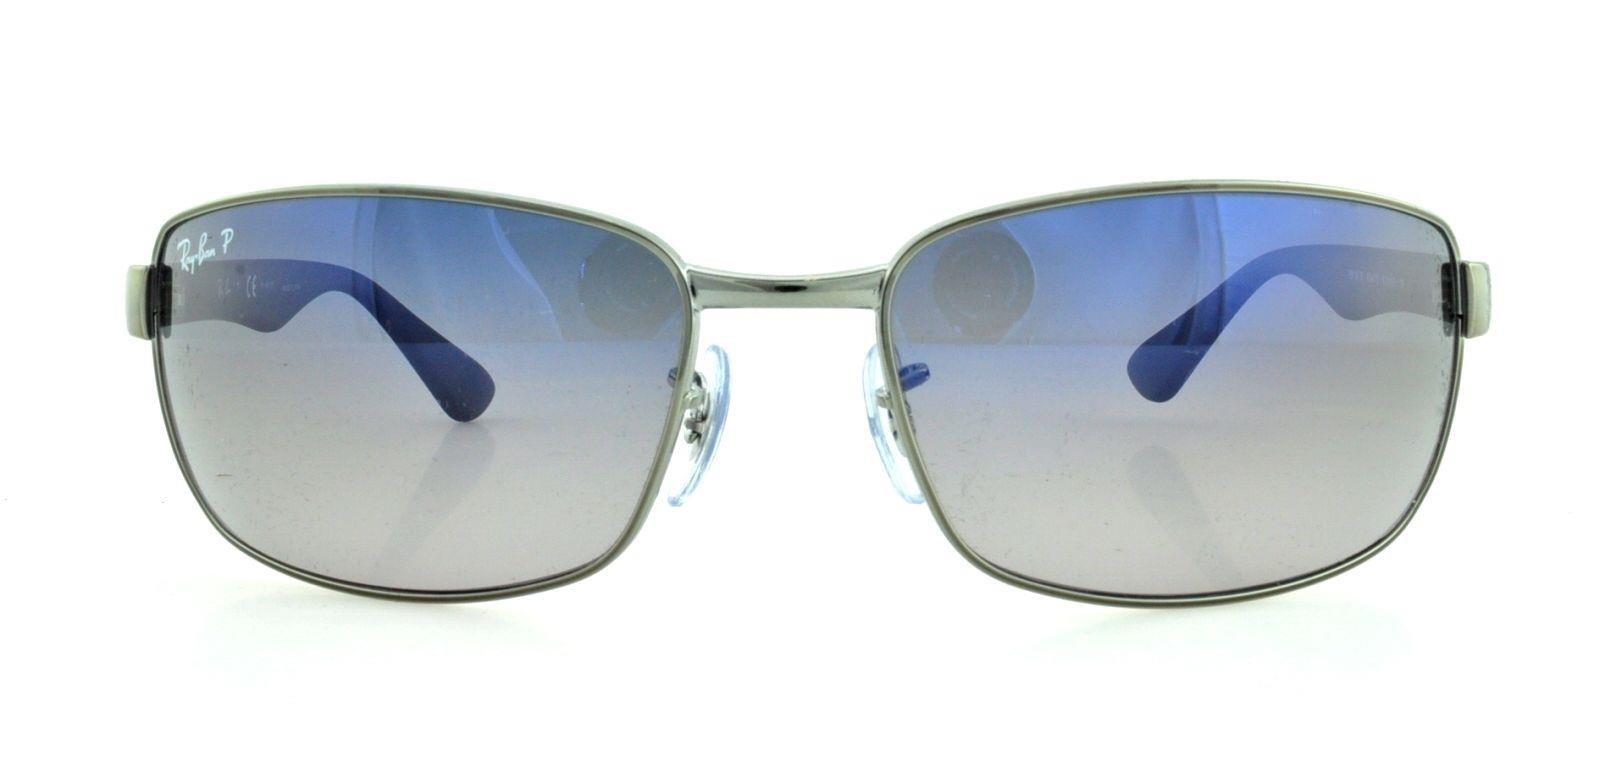 buy ray ban sunglasses  buy ray ban sunglasses online malaysia